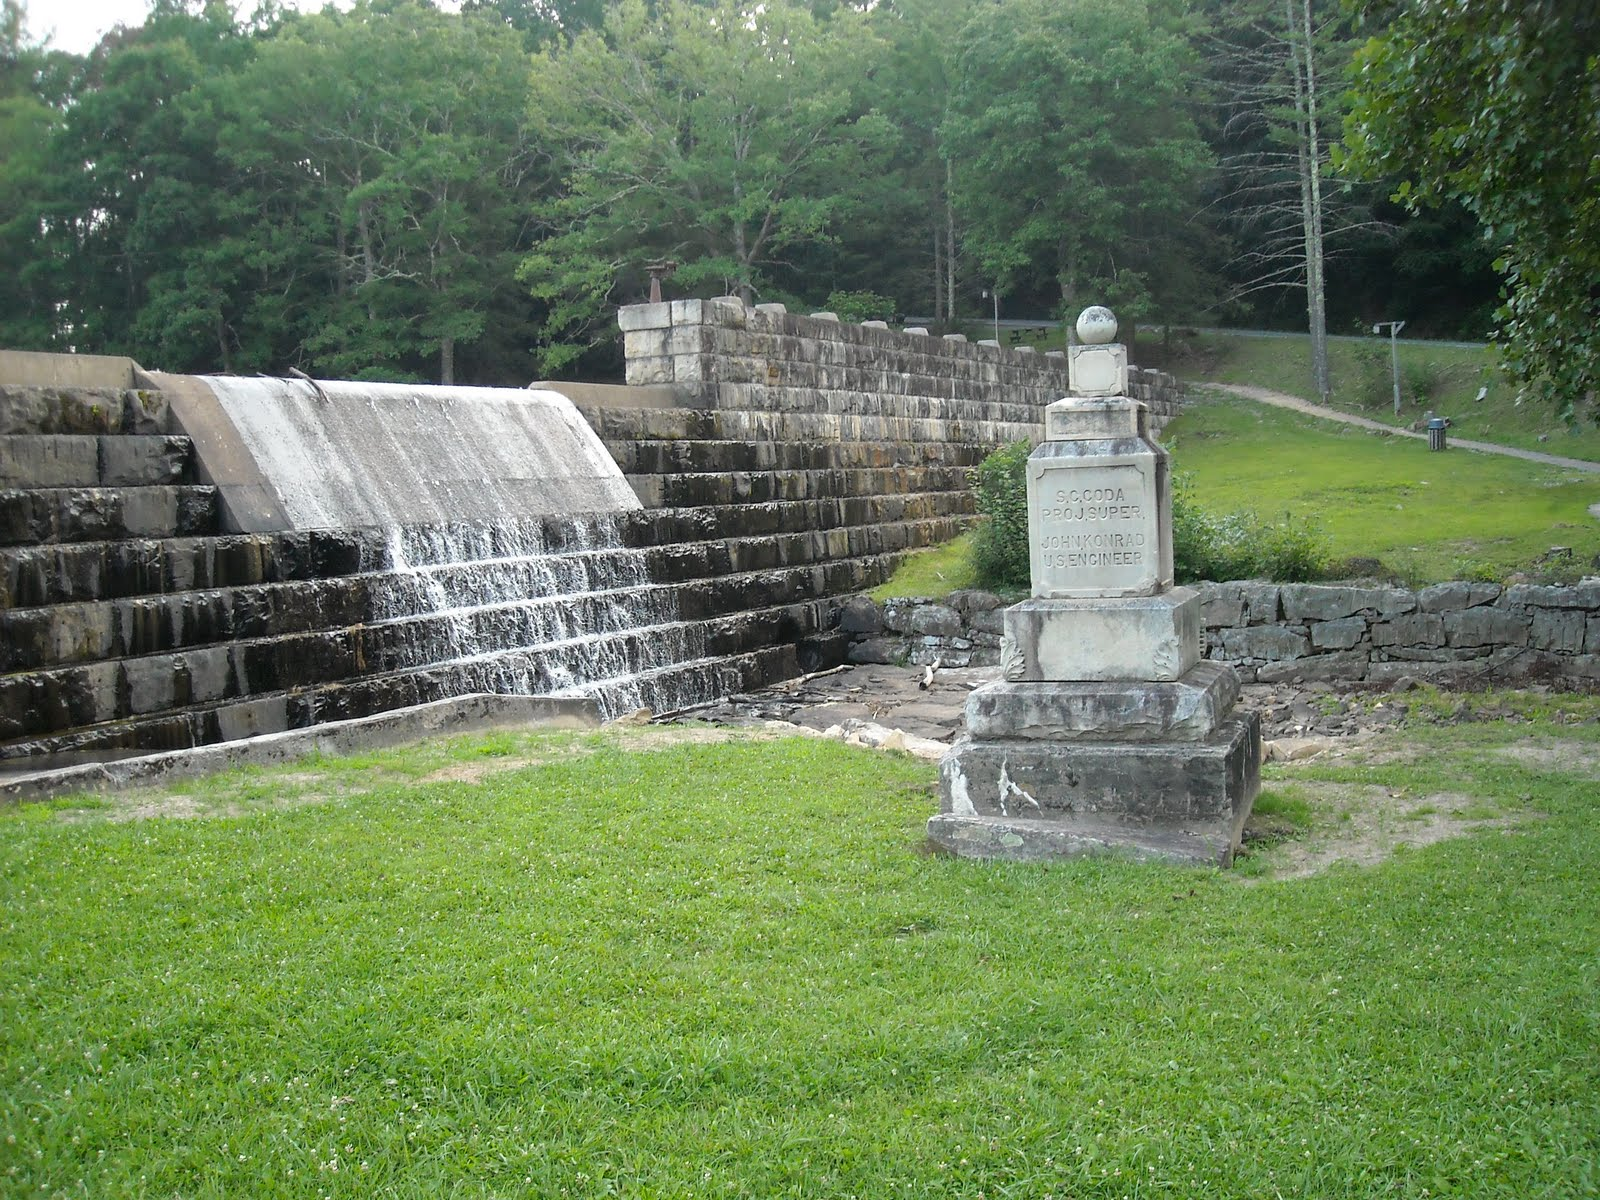 The dam and the monument to the men who built the camp from CCC Raleigh.